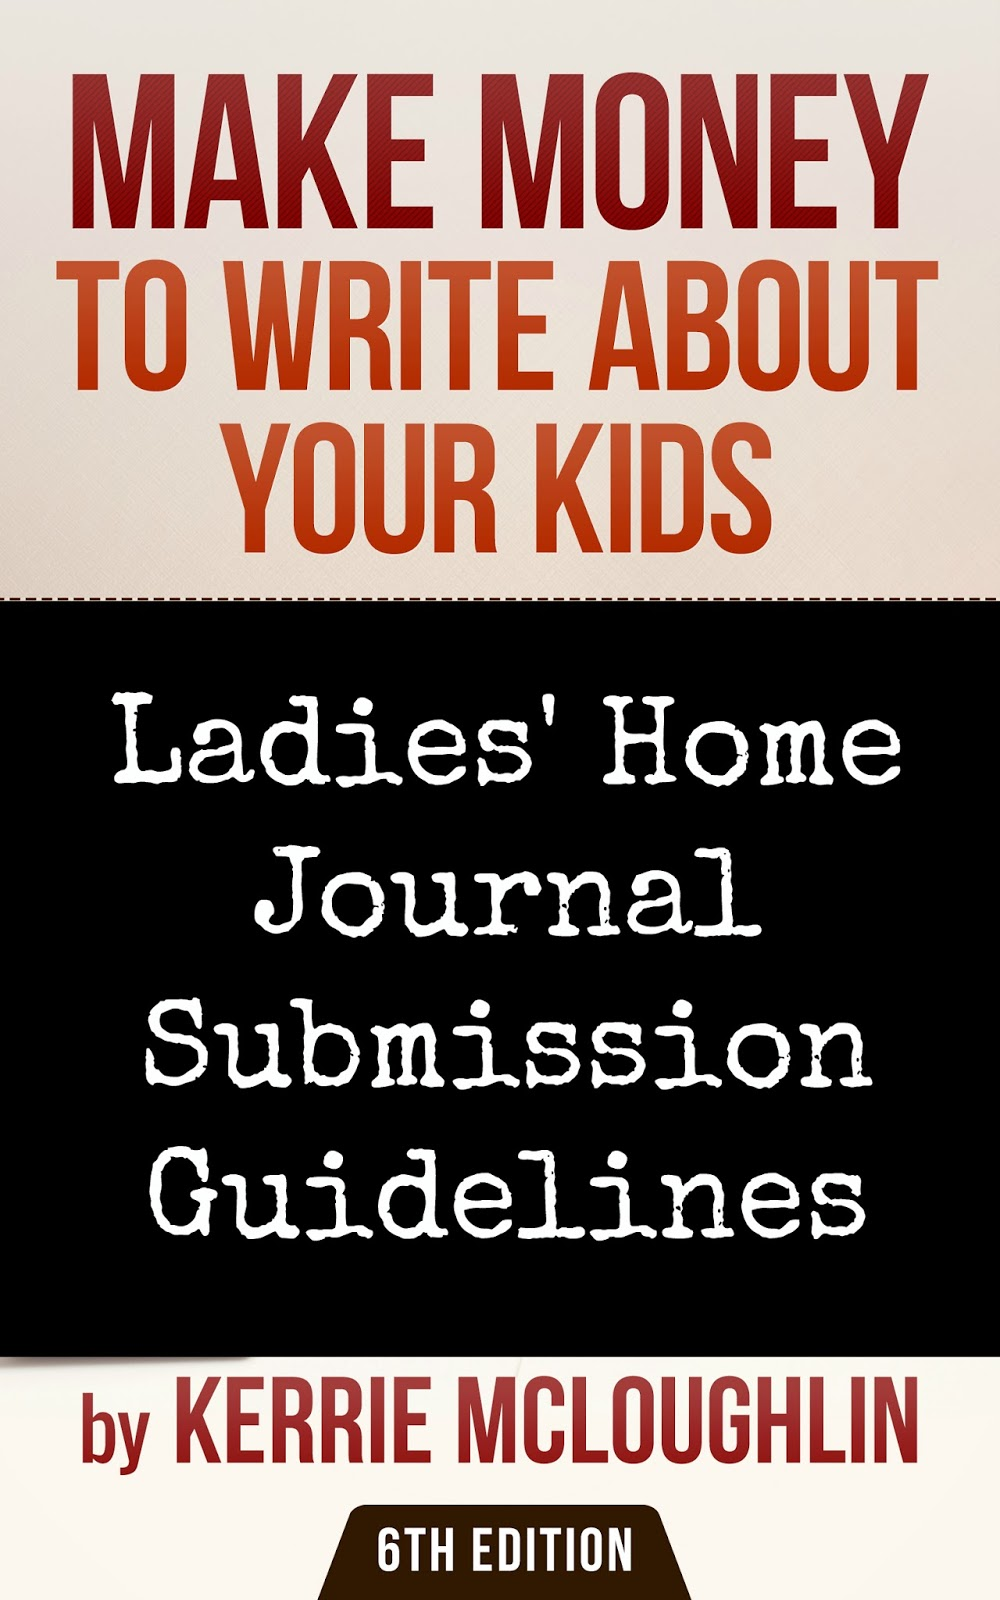 writers journal magazine